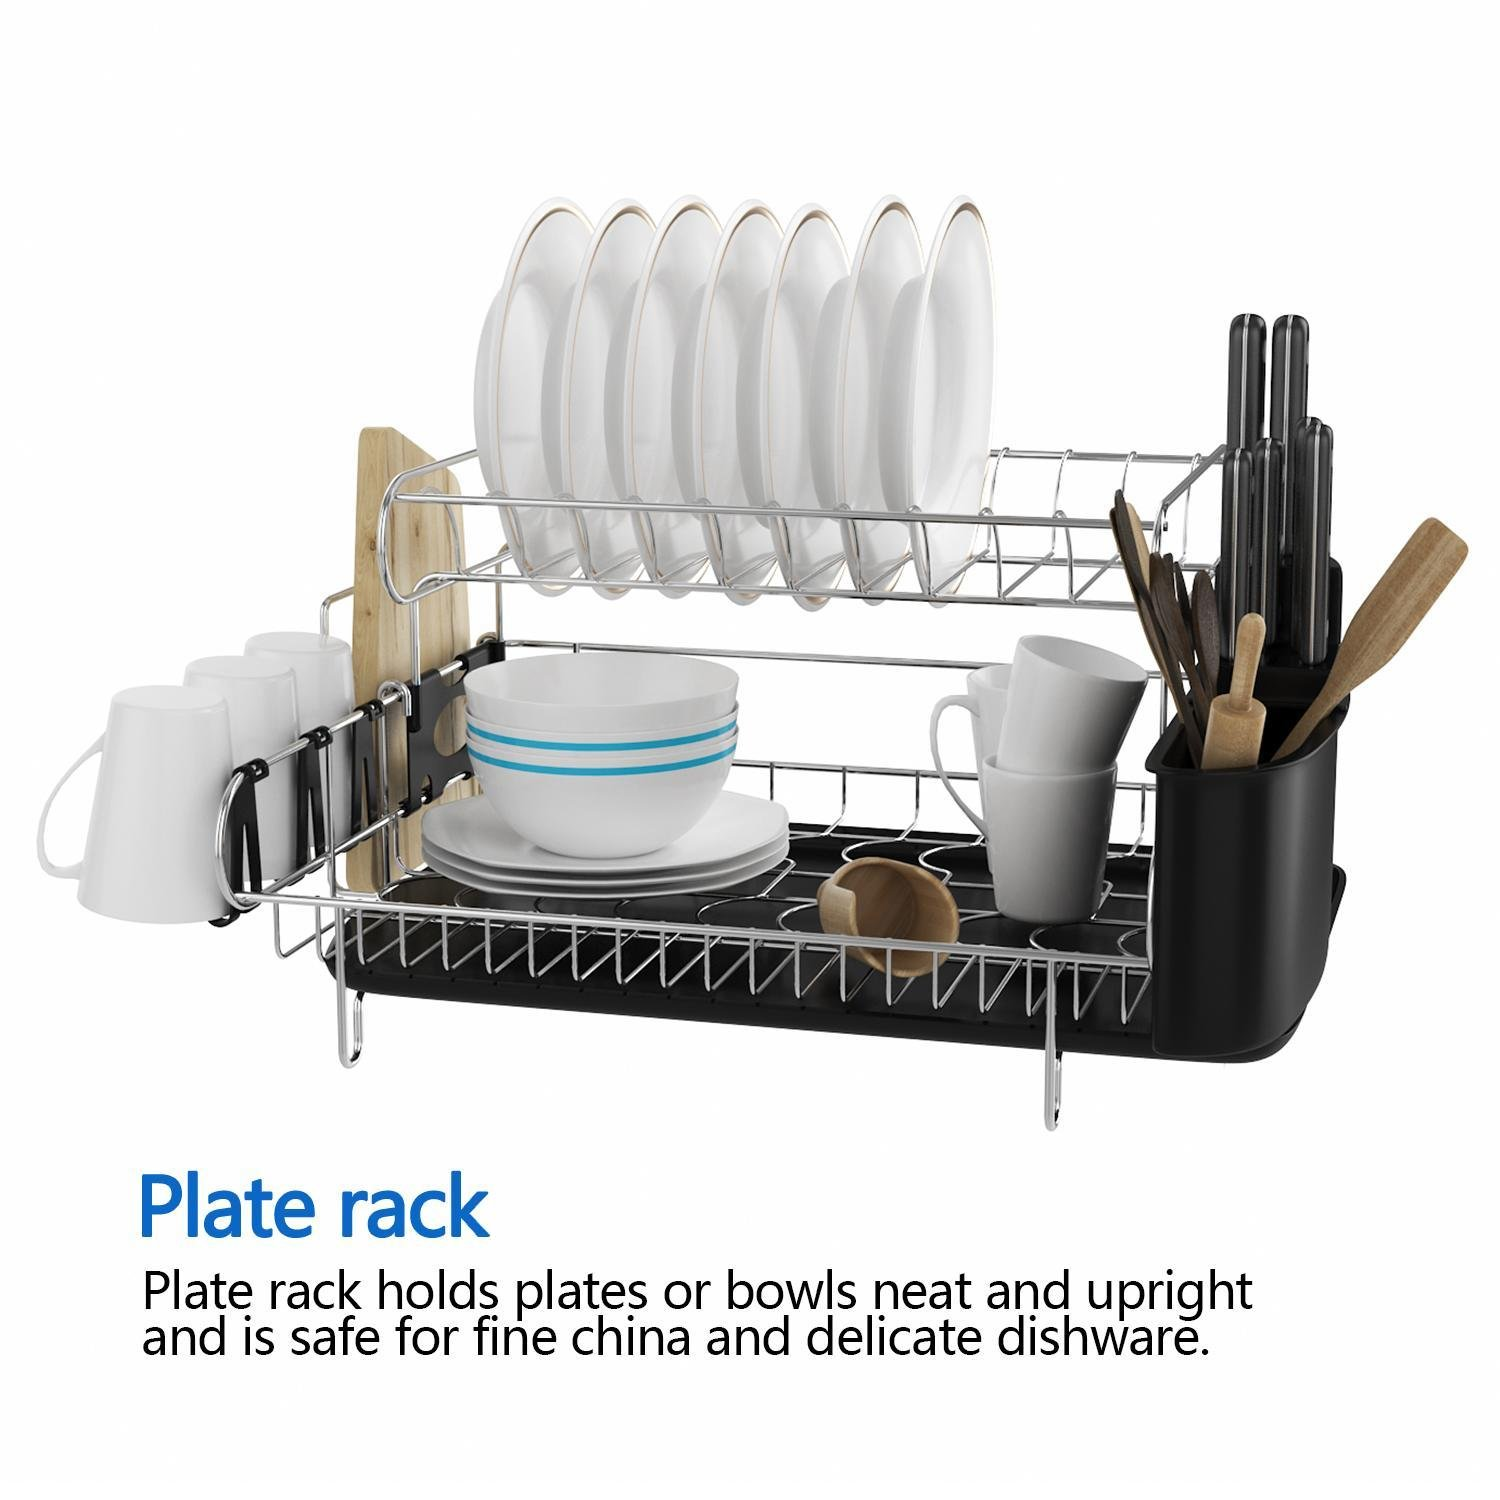 Mewalker 2 Tier Dish Drying Rack 304 Stainless Steel Professional Dish Rack with Microfiber Mat Drain Board and Cutlery Holder, Black by Mewalker (Image #2)